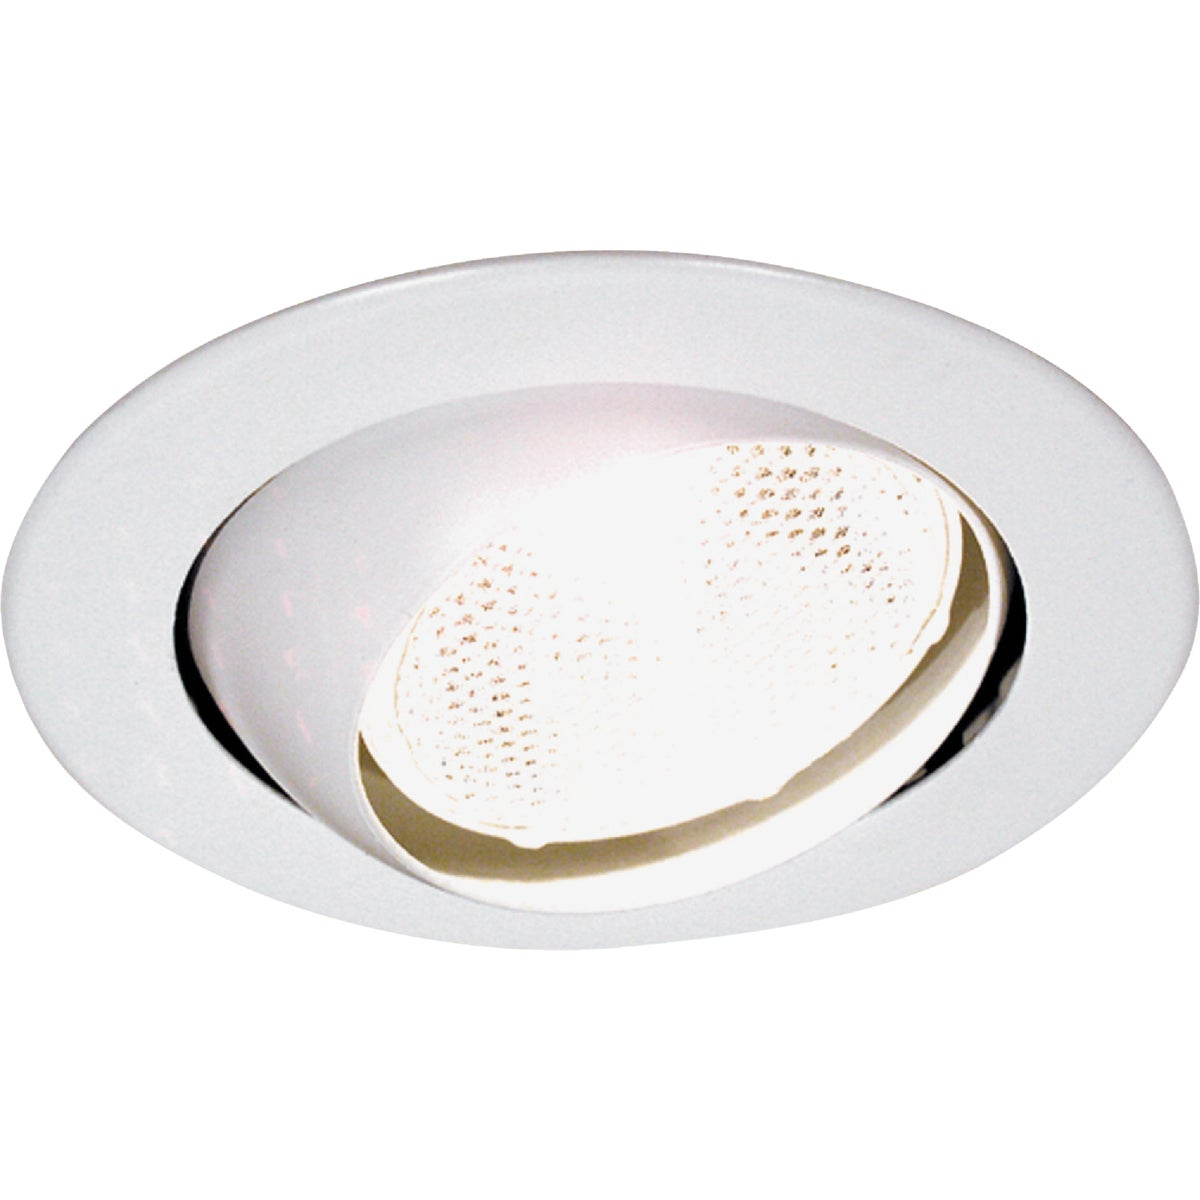 WHT RECESS FIXTURE TRIM - TR408 by Philips Consumer Lum